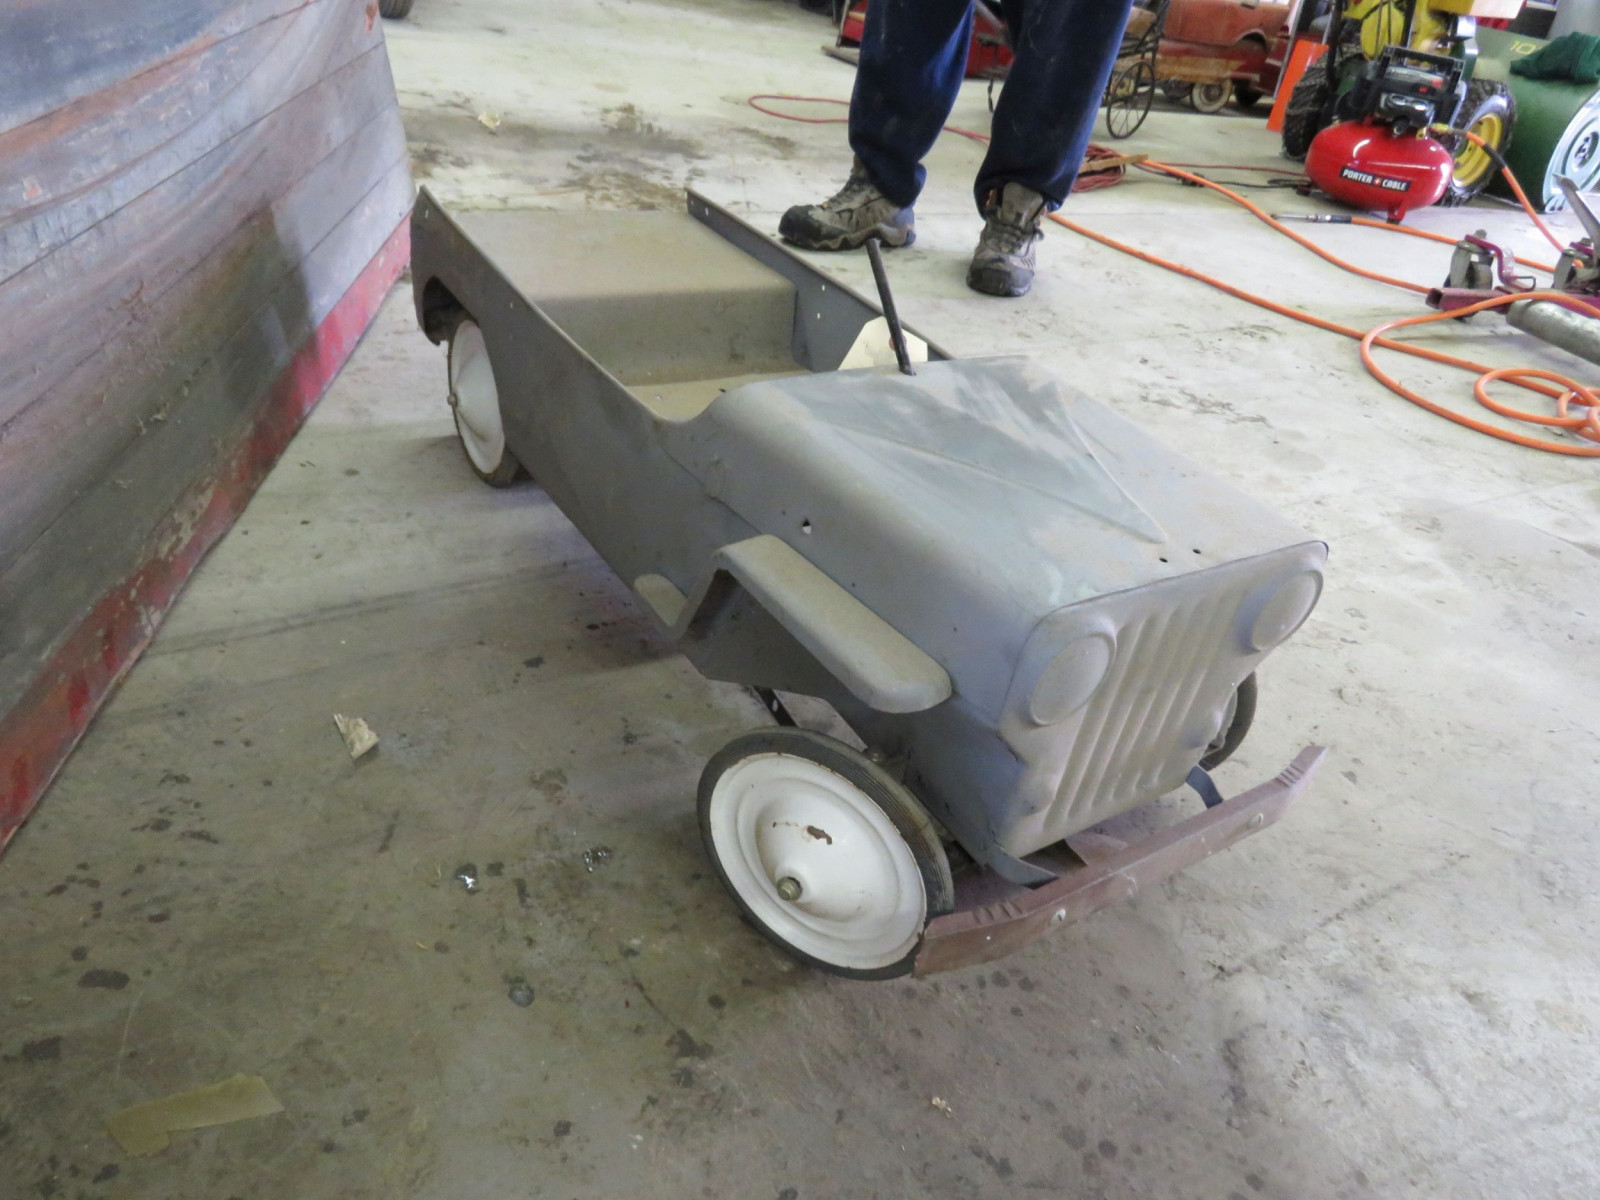 Vintage Garton Military Willys Jeep Pedal Car for restore - Image 3